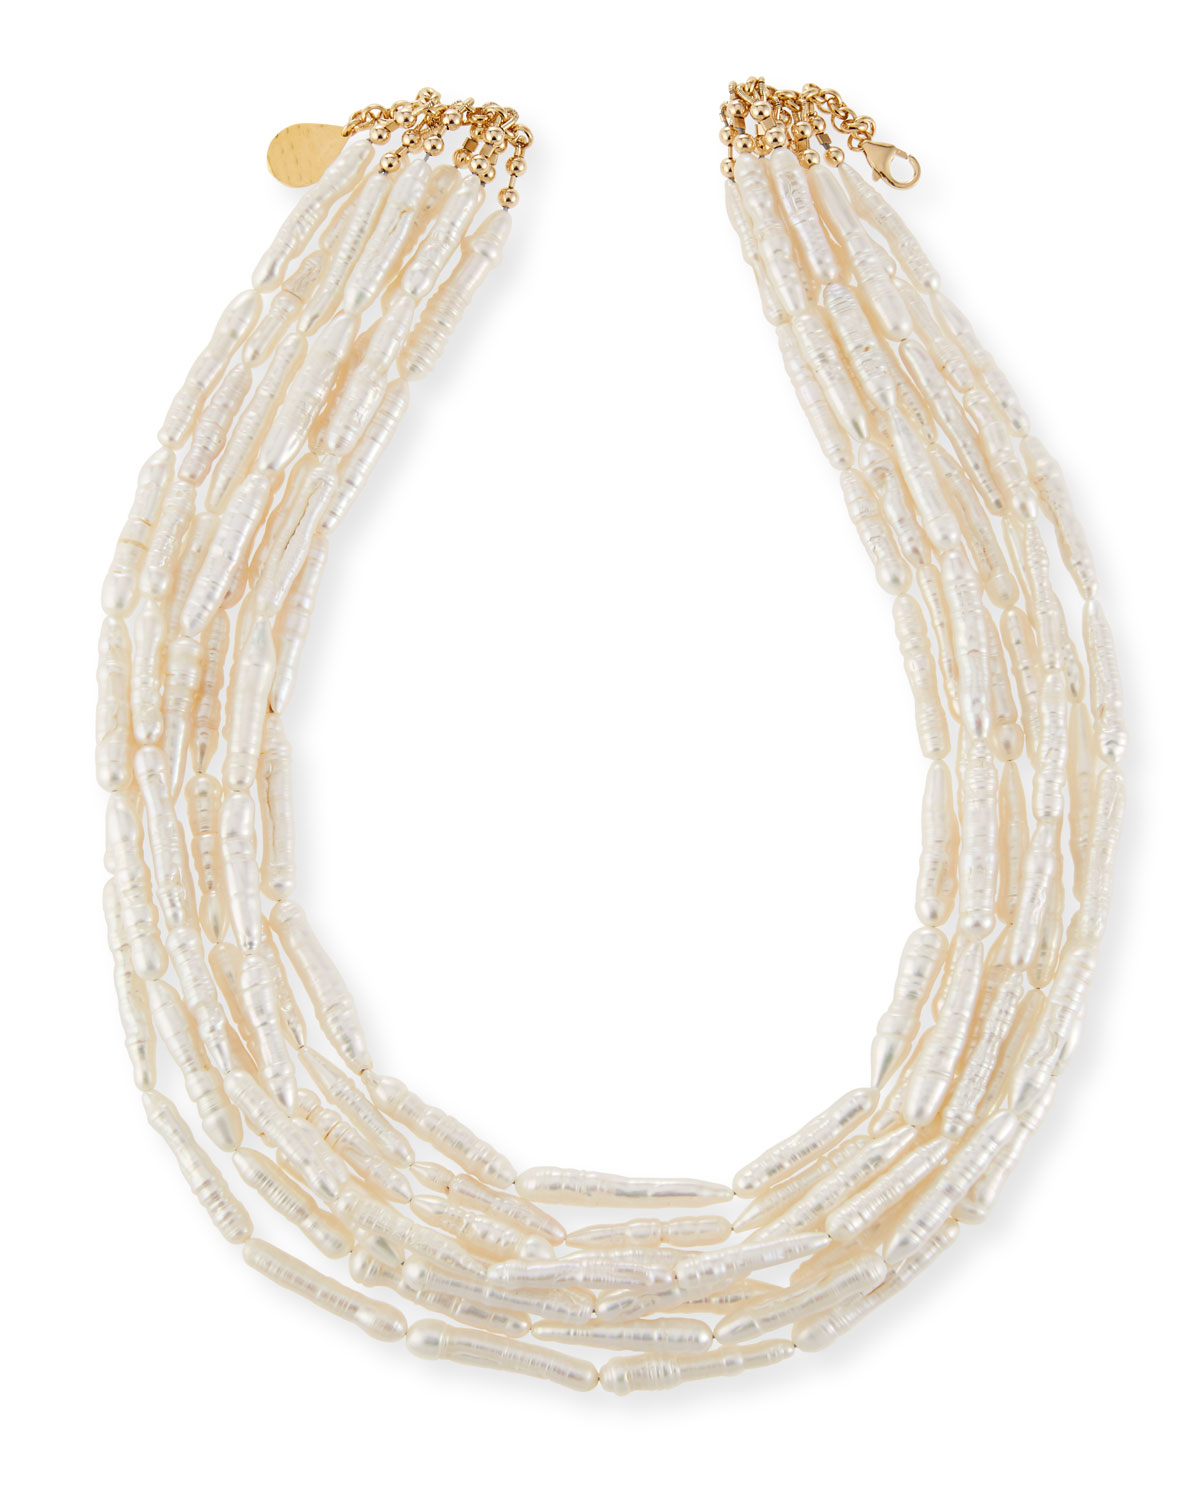 Devon Leigh Freshwater Pearl Branch Multi-Strand Necklace